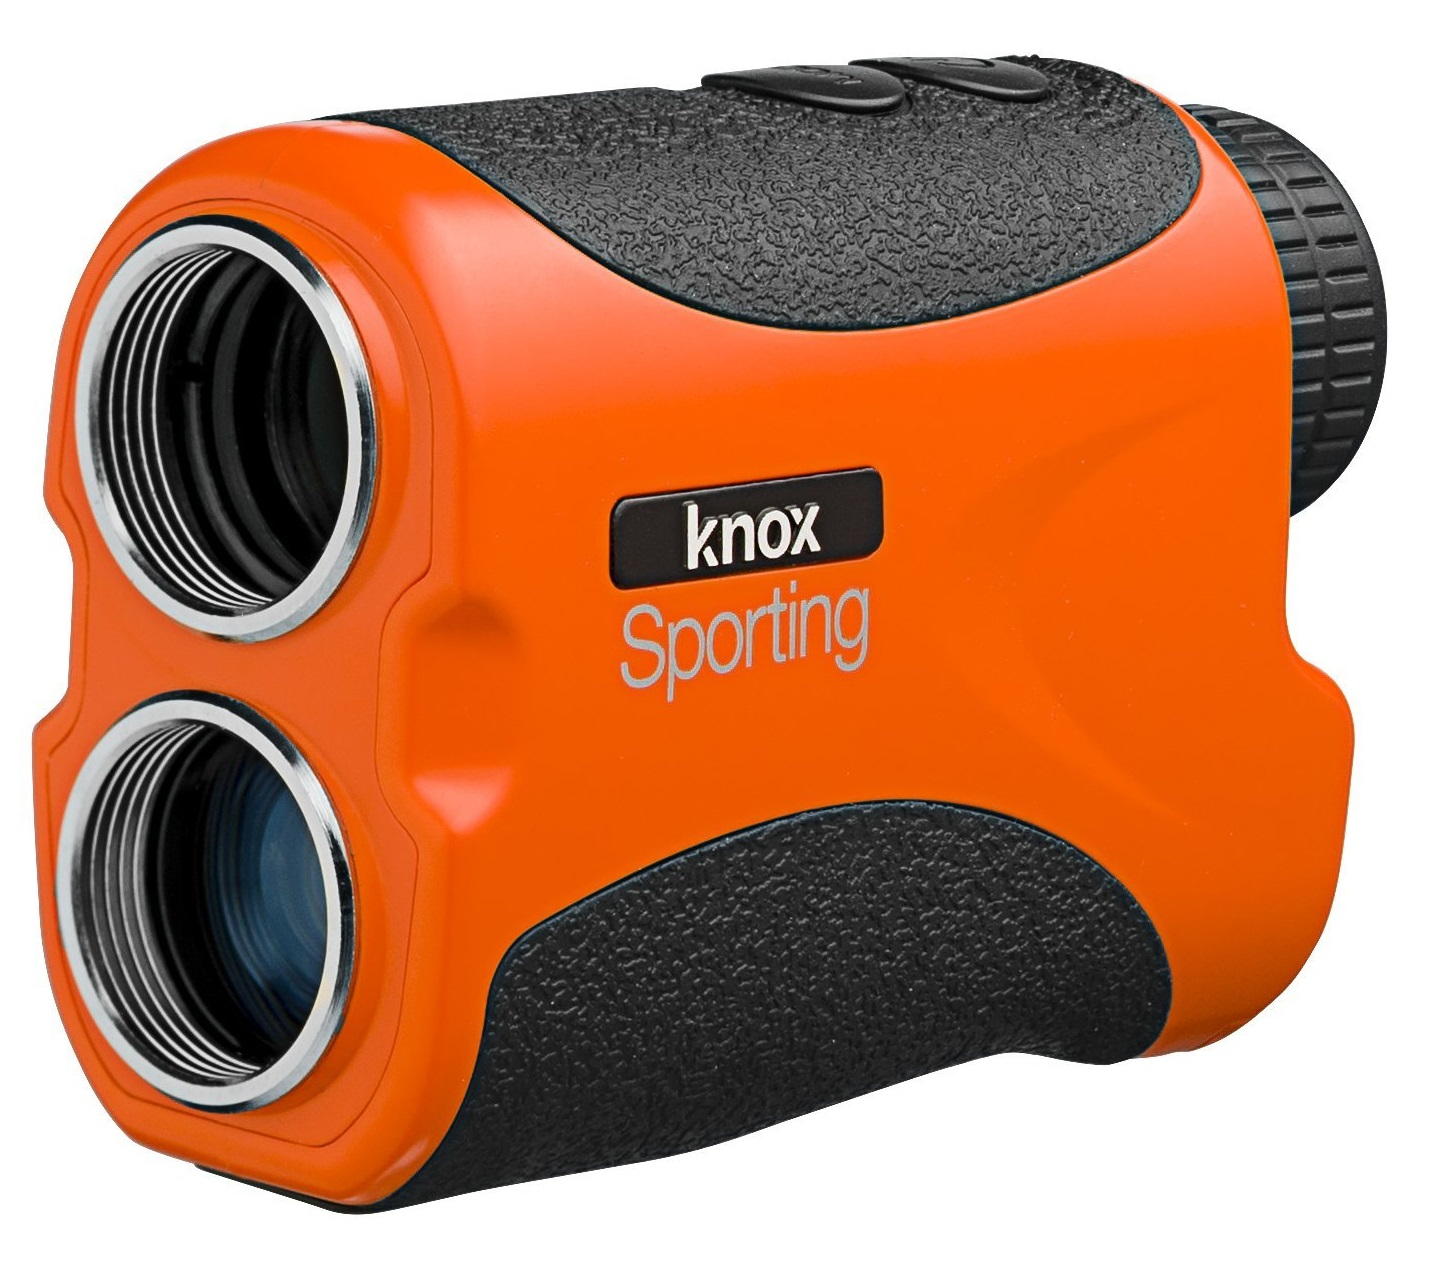 Knox Sporting Golf Laser Range Finders with Slope